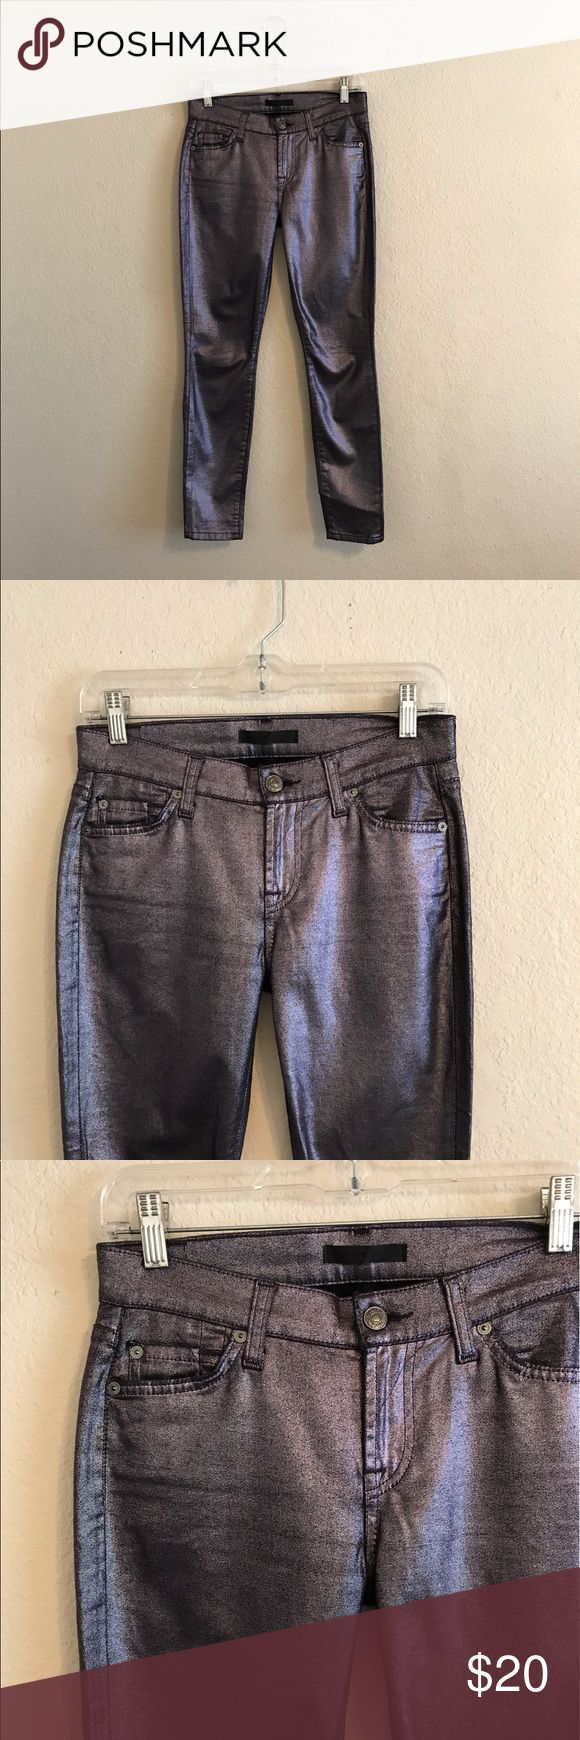 """7 For All Mankind women's Metallic Skinny Jeans 25 7 For All Mankind women's Skinny Crop Jeans.  Size: 25.  In Great condition!  Inseam: 27"""".  If you have any questions feel free to ask ! 7 For All Mankind Jeans Skinny"""